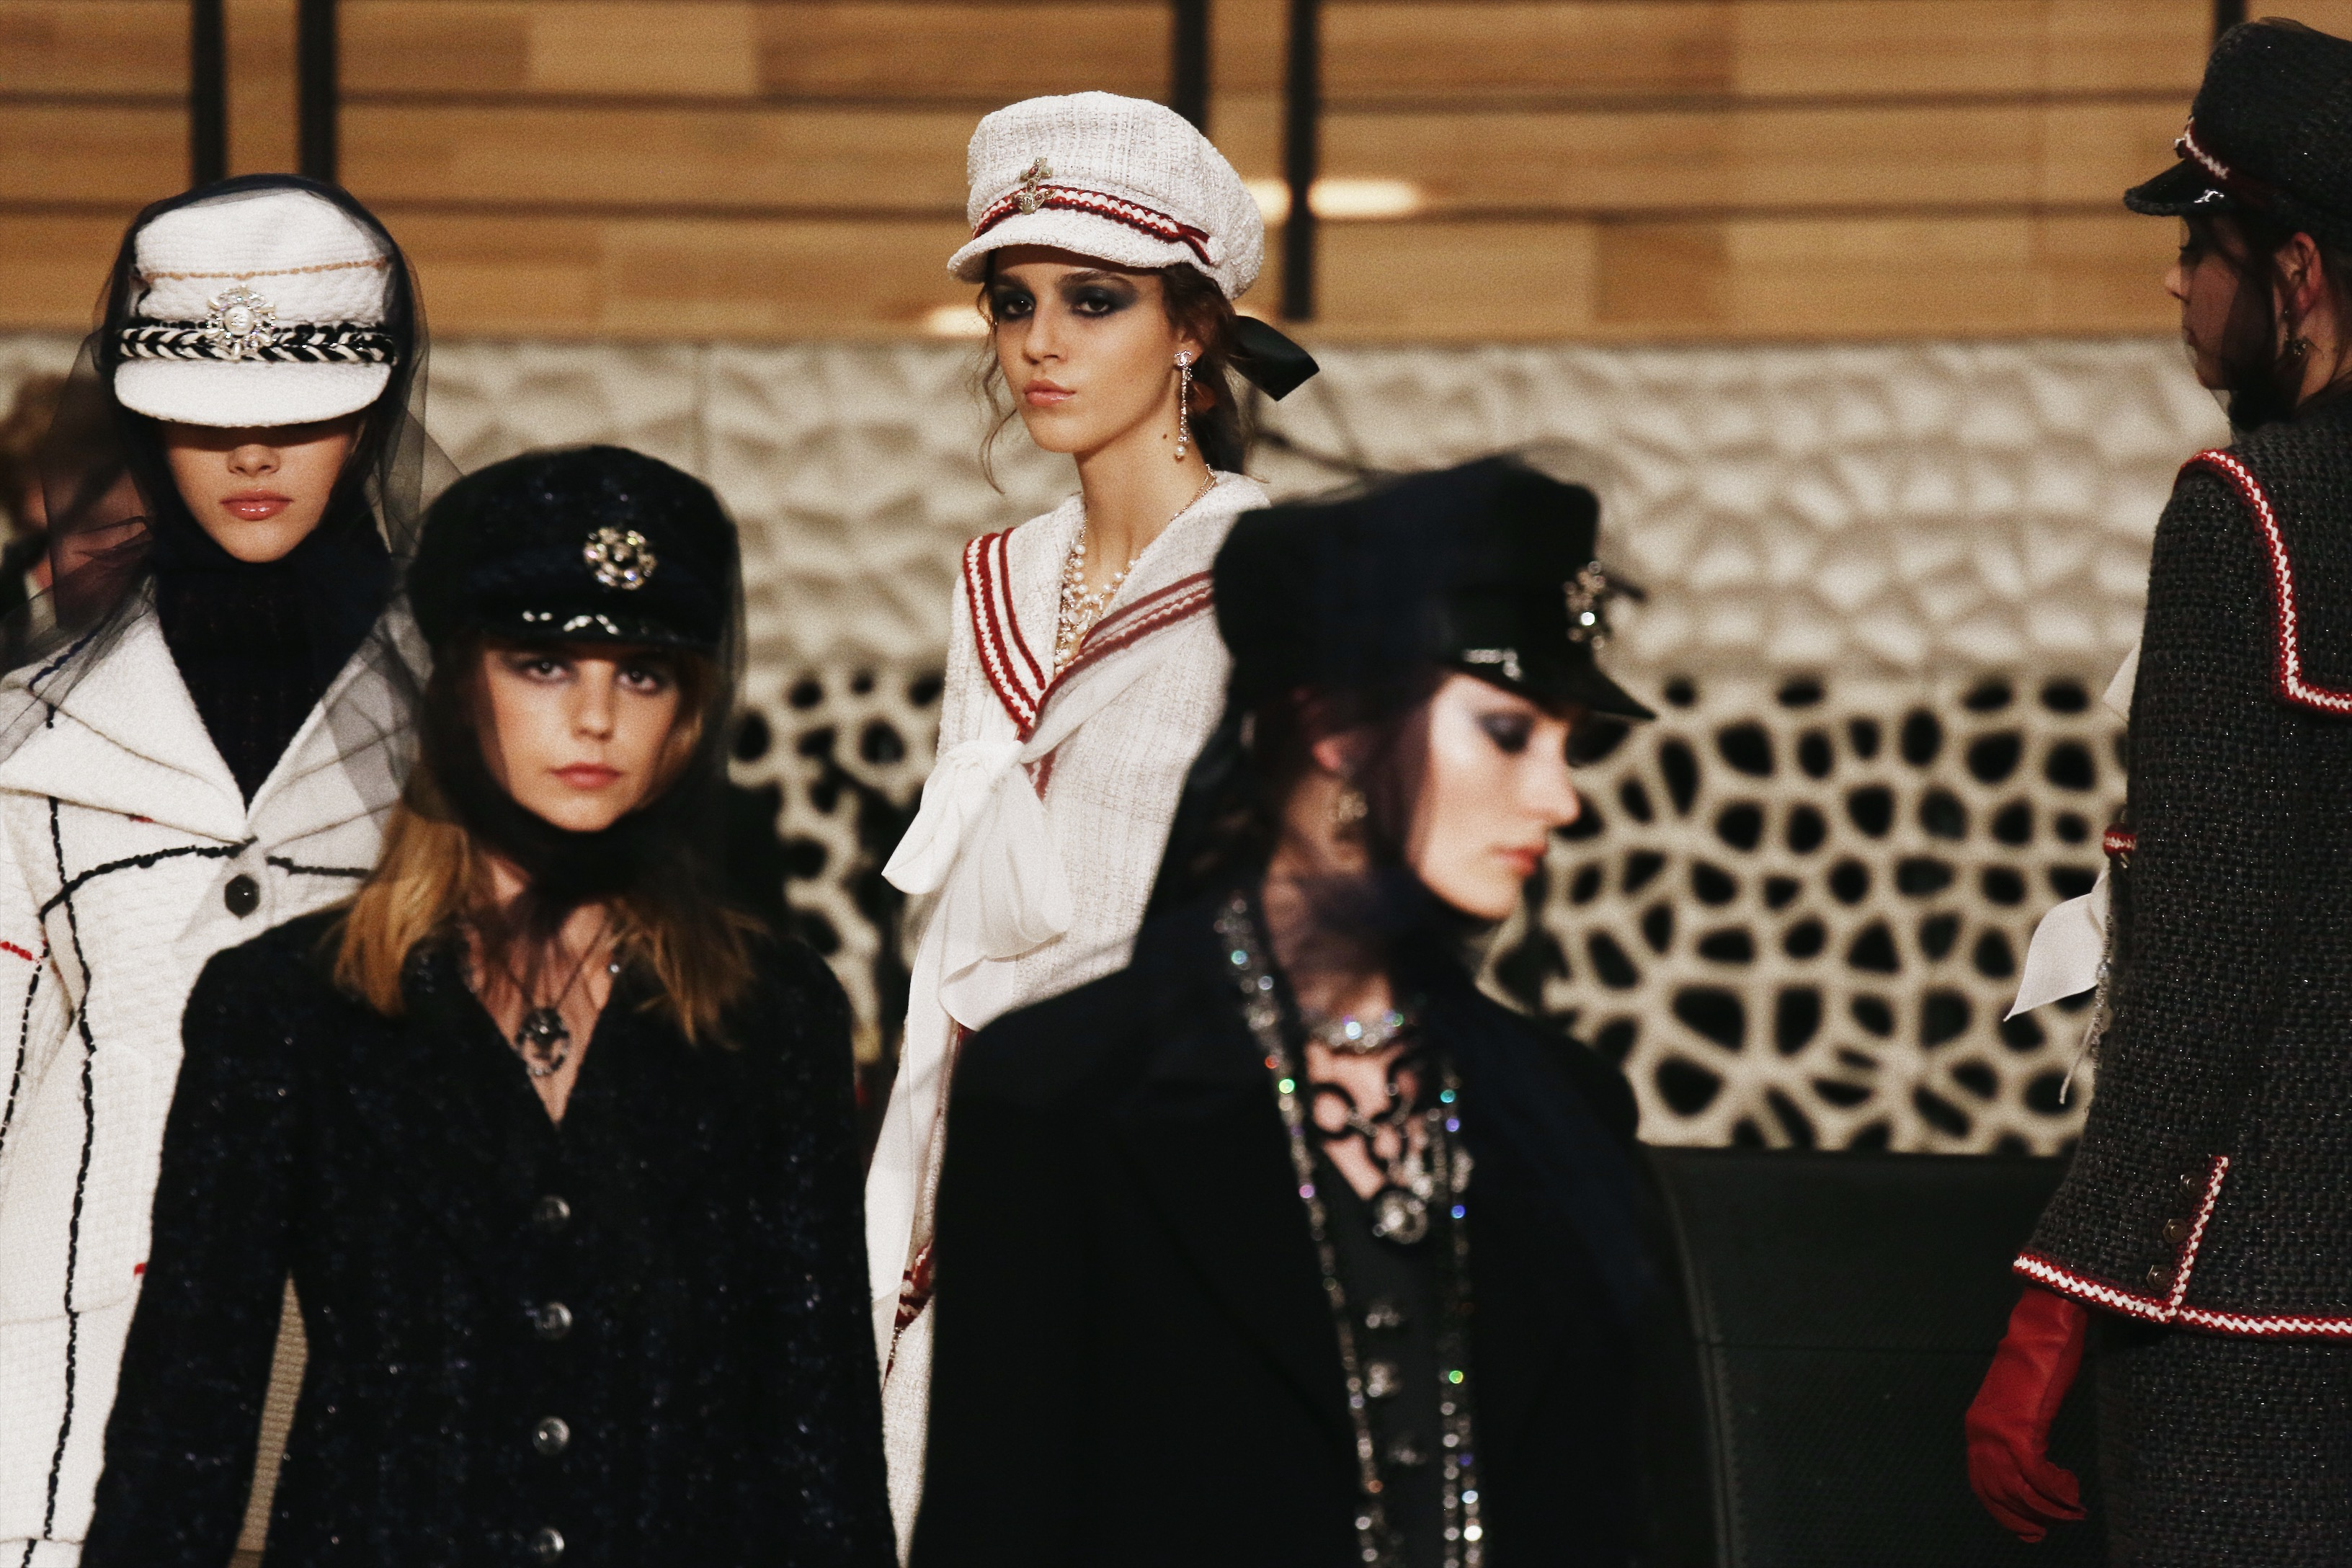 CHANEL MÉTIERS D'ART PARIS - HAMBURG 2017/18